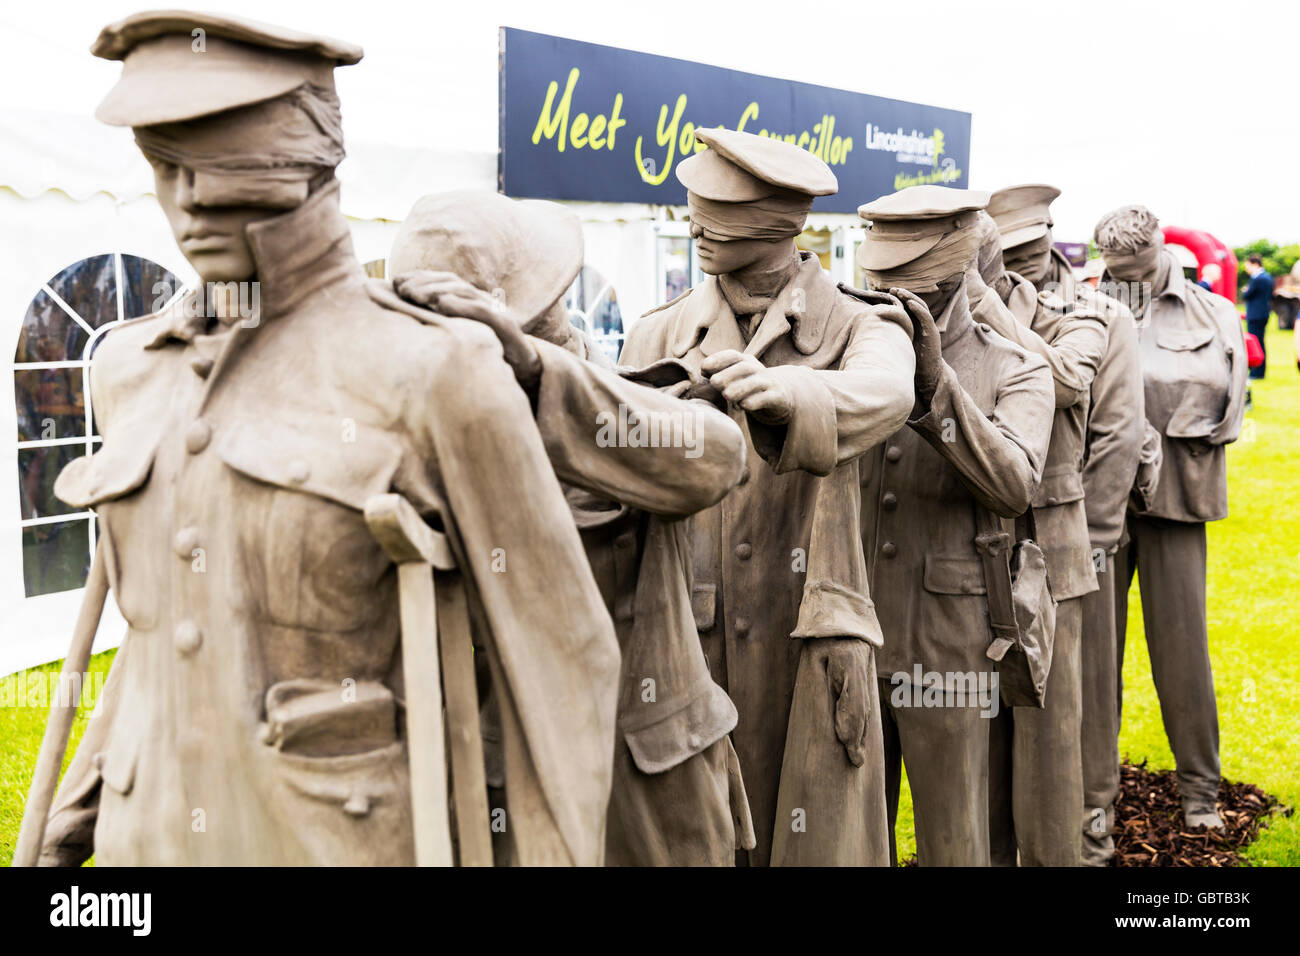 WW2 prisoners blinded in war sculpture wounded maimed hurt blind soldiers UK England GB - Stock Image